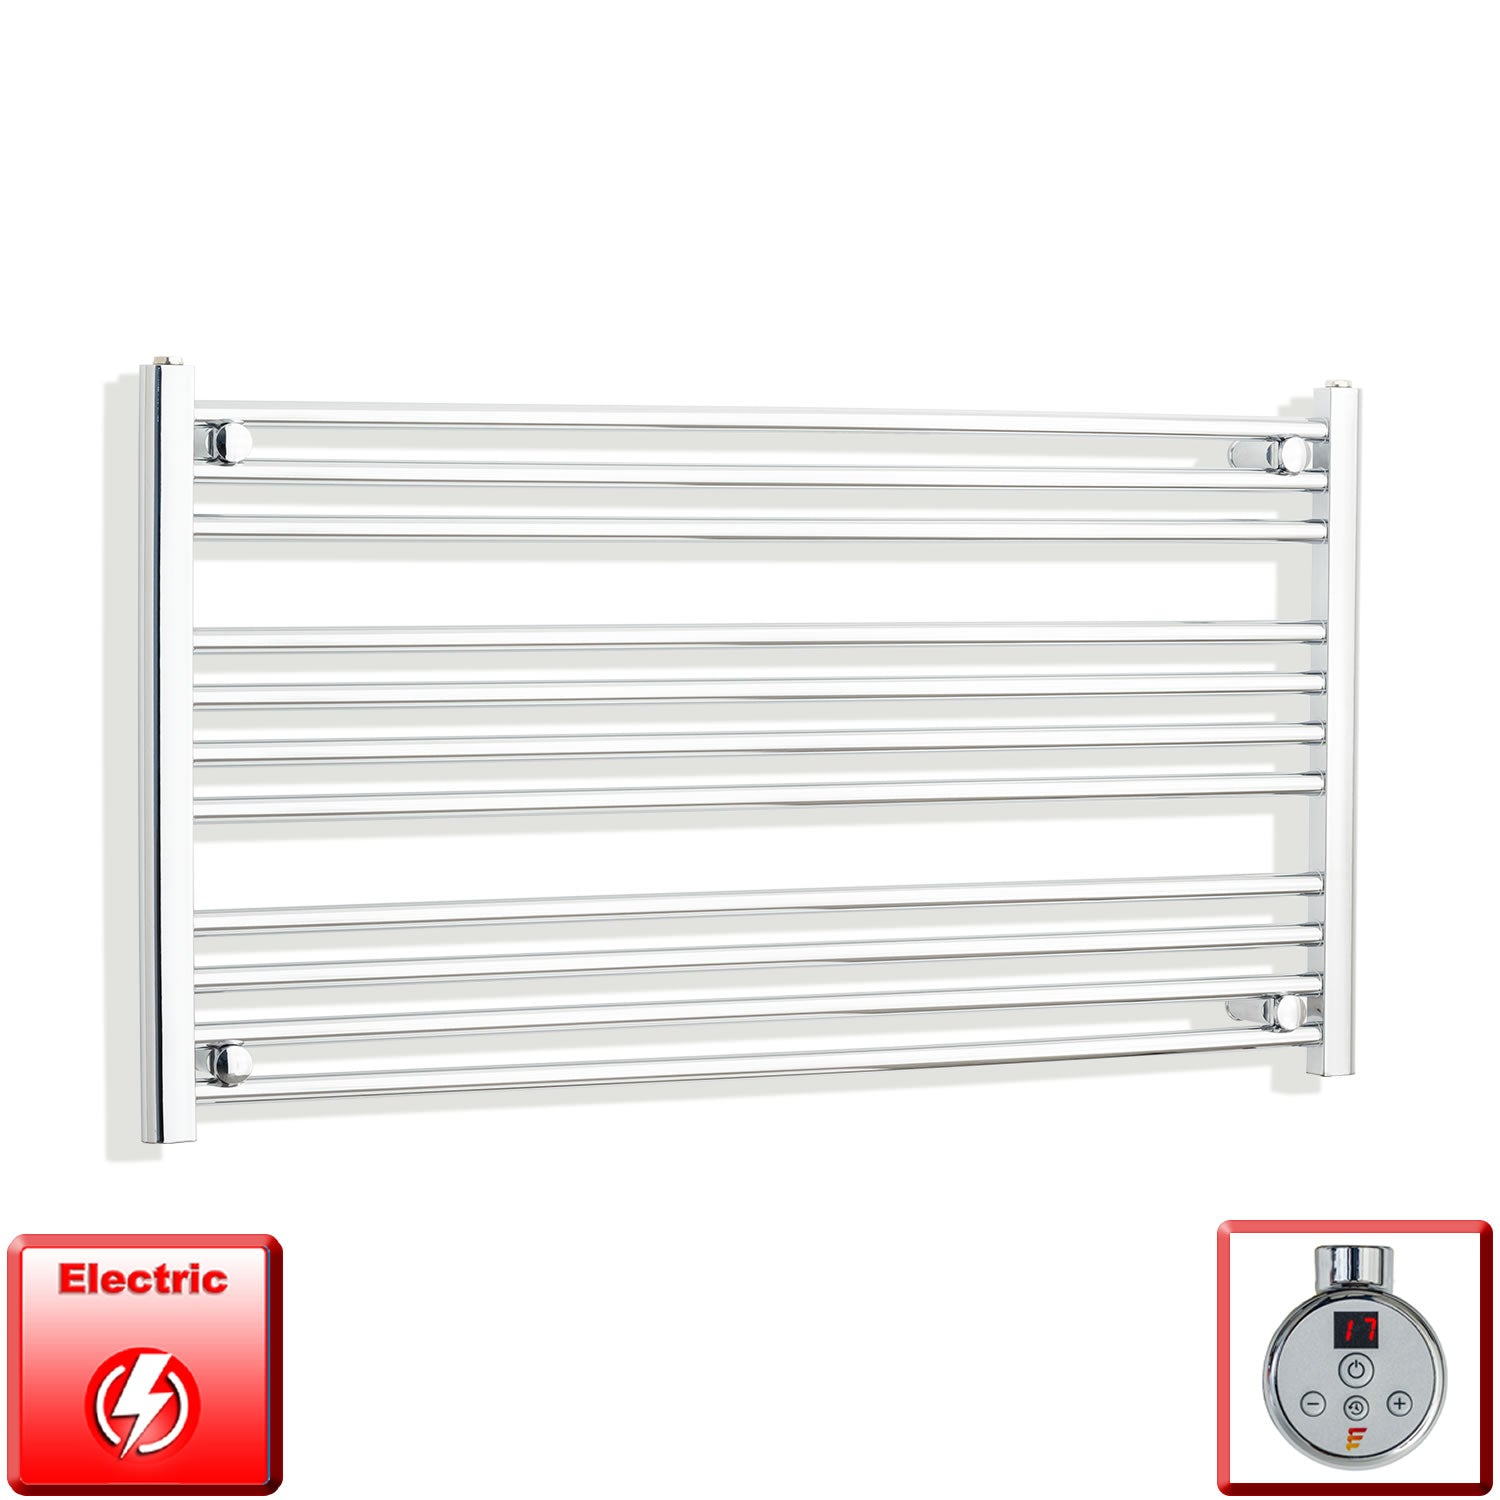 950mm Wide 600mm High Pre-Filled Chrome Electric Towel Rail Radiator With Thermostatic DIGI Element